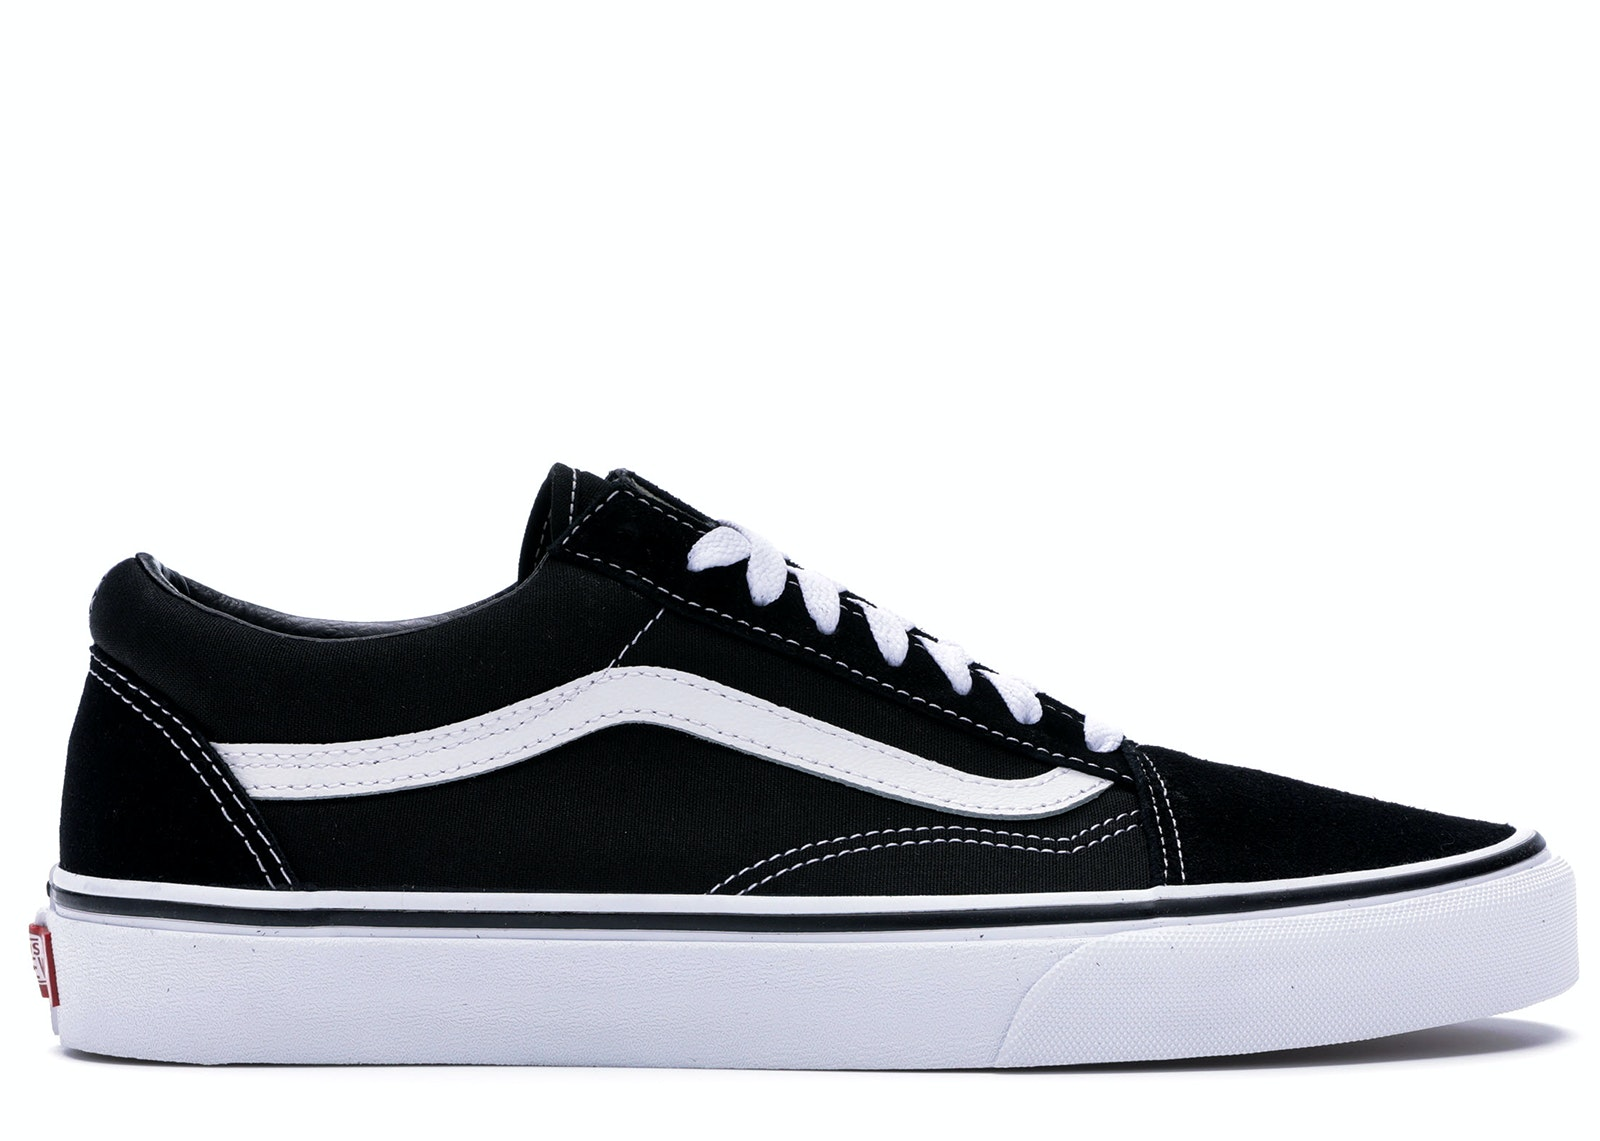 392f9eb2bd vans old skool x alyx - www.cytal.it